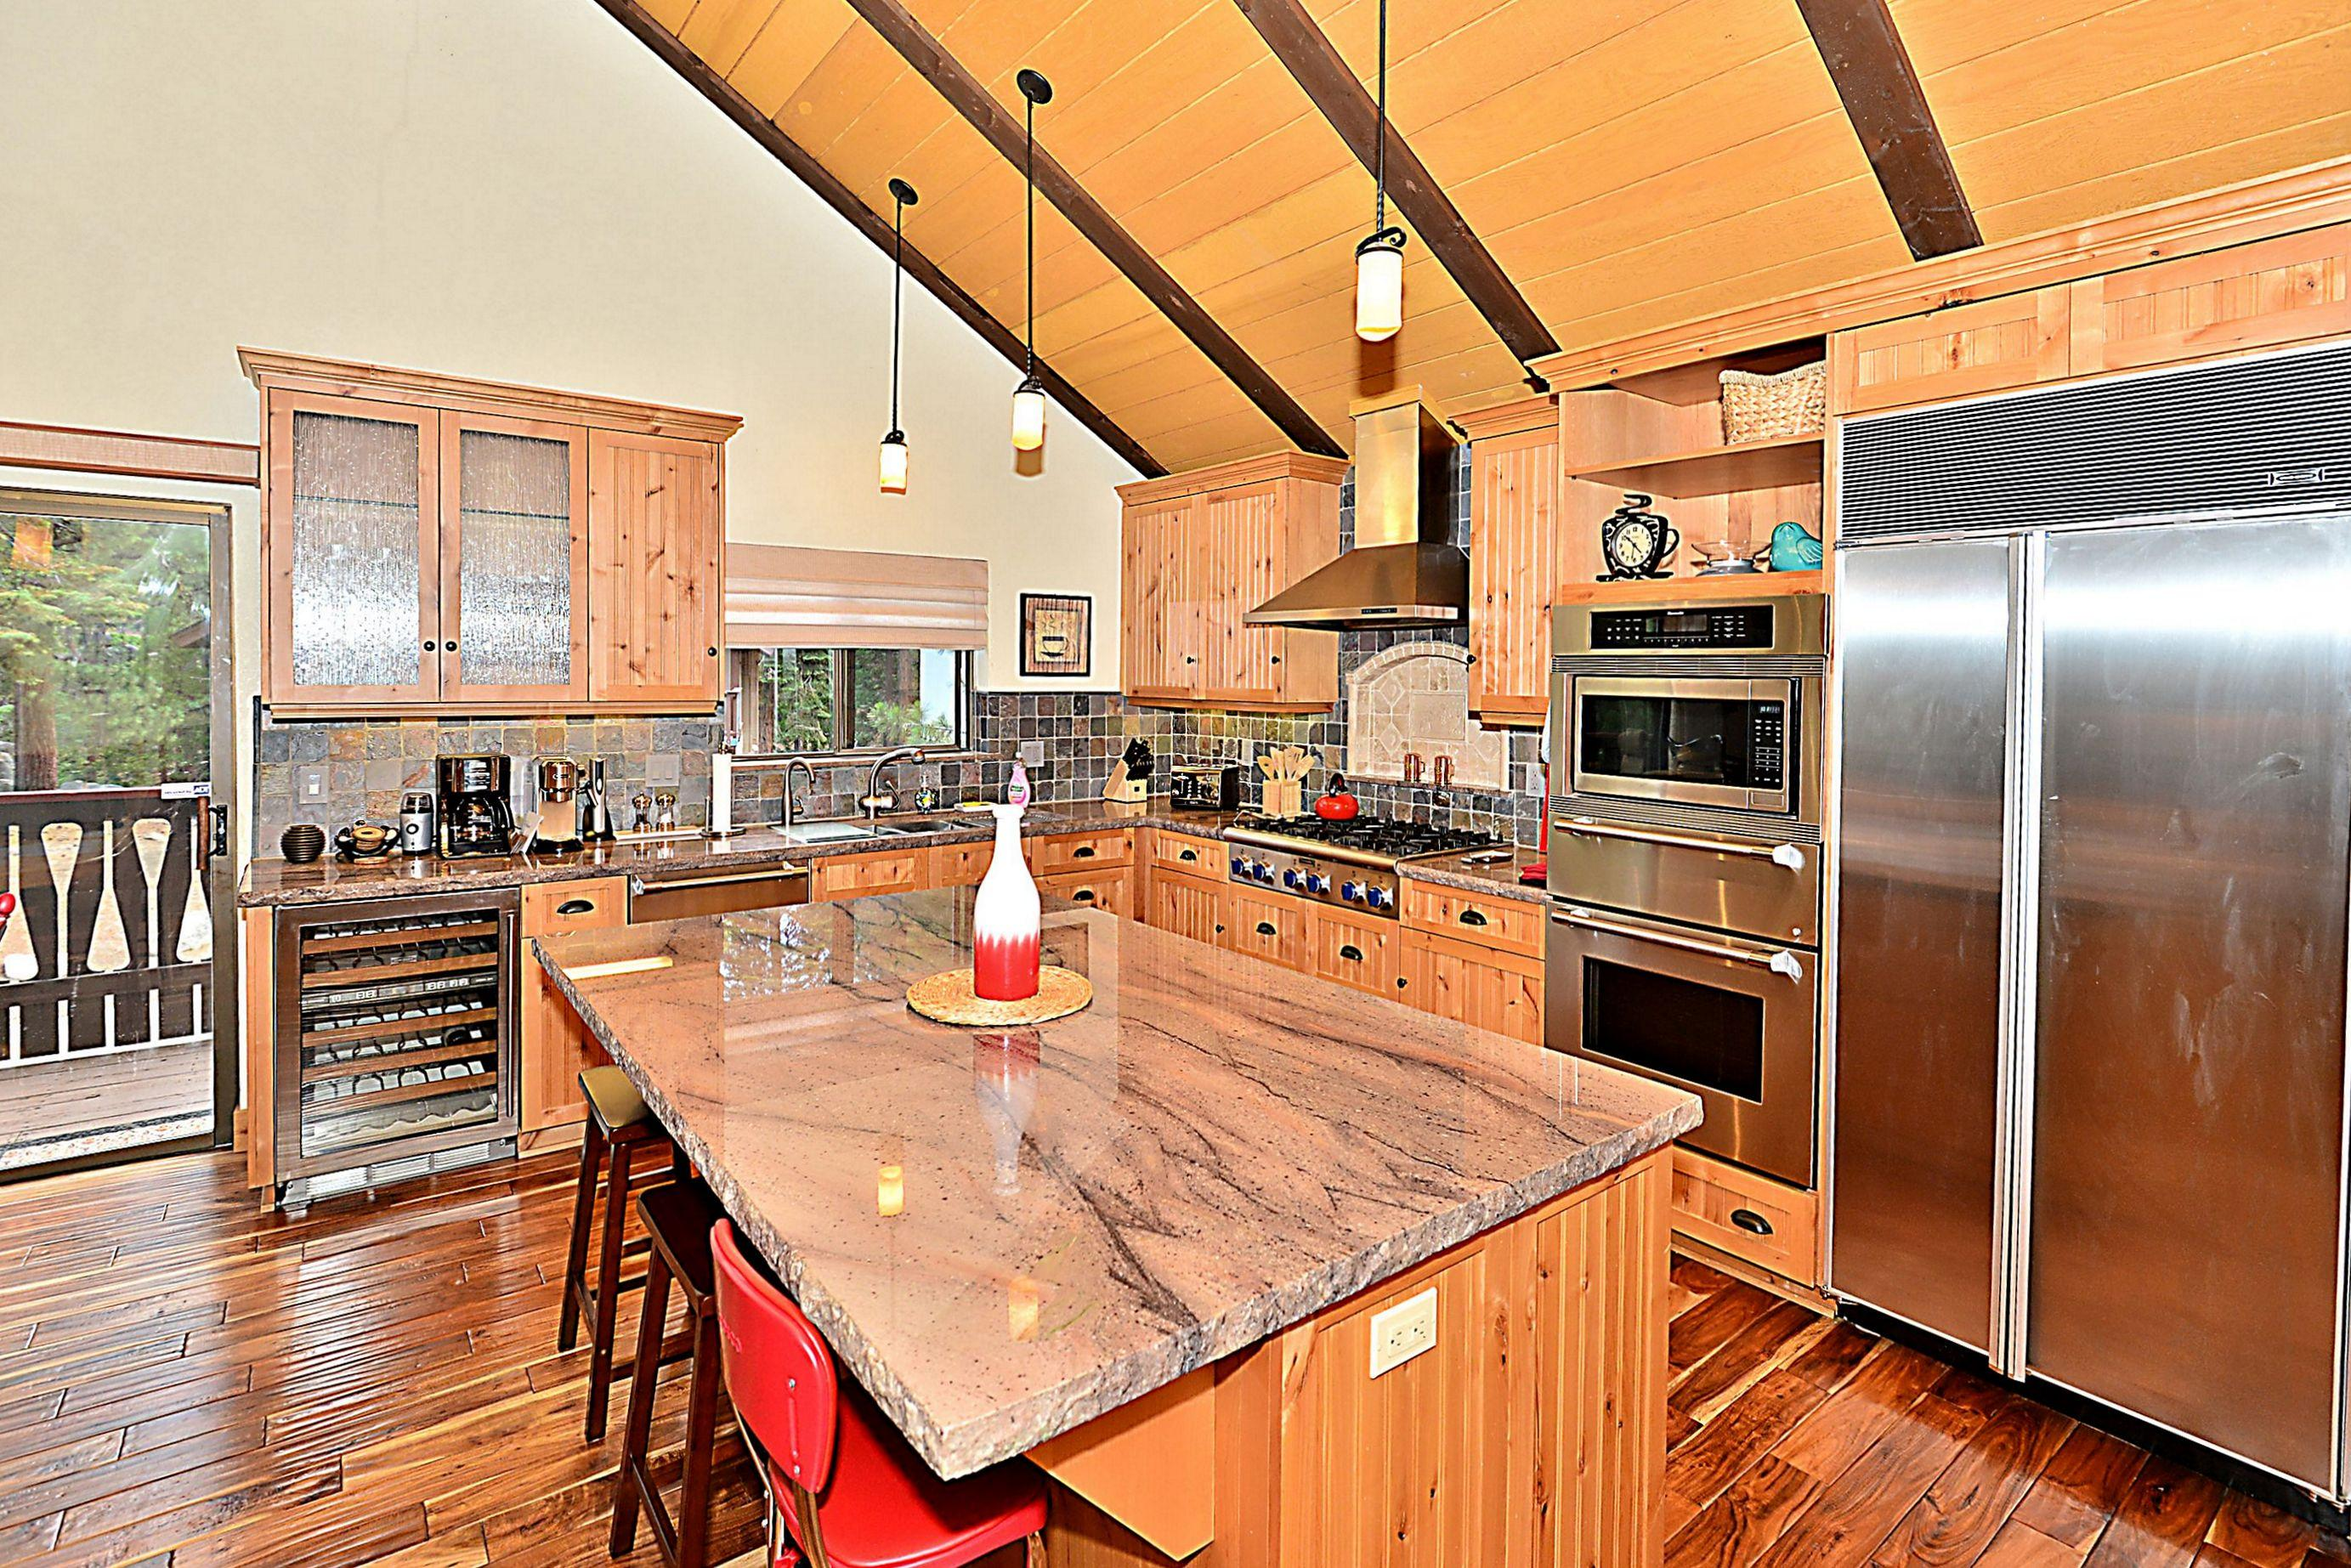 The kitchen is newly remodeled with top-of-the-line chef's appliances and a granite island.